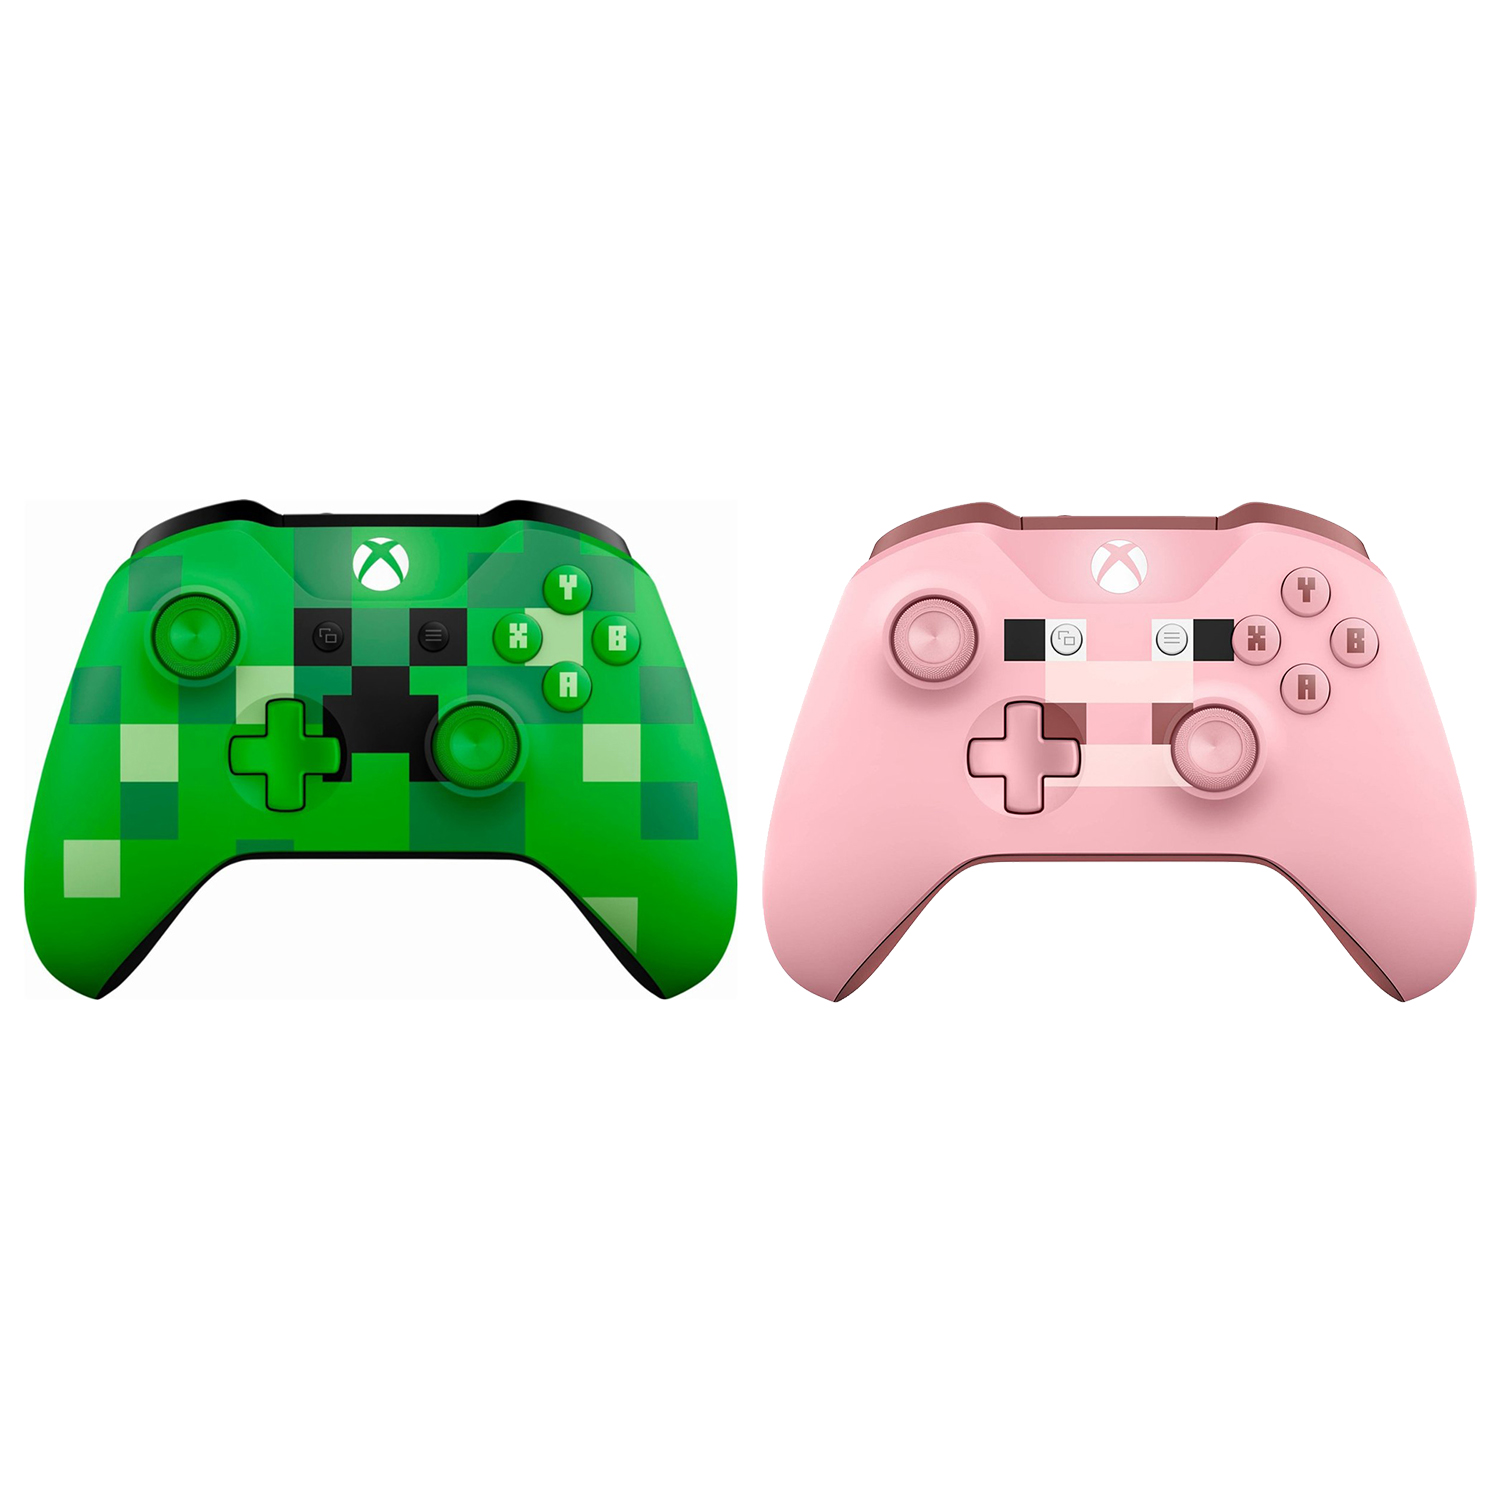 Xbox One Bluetooth Wireless Controller Minecraft Creeper and Pig Edition by Microsoft